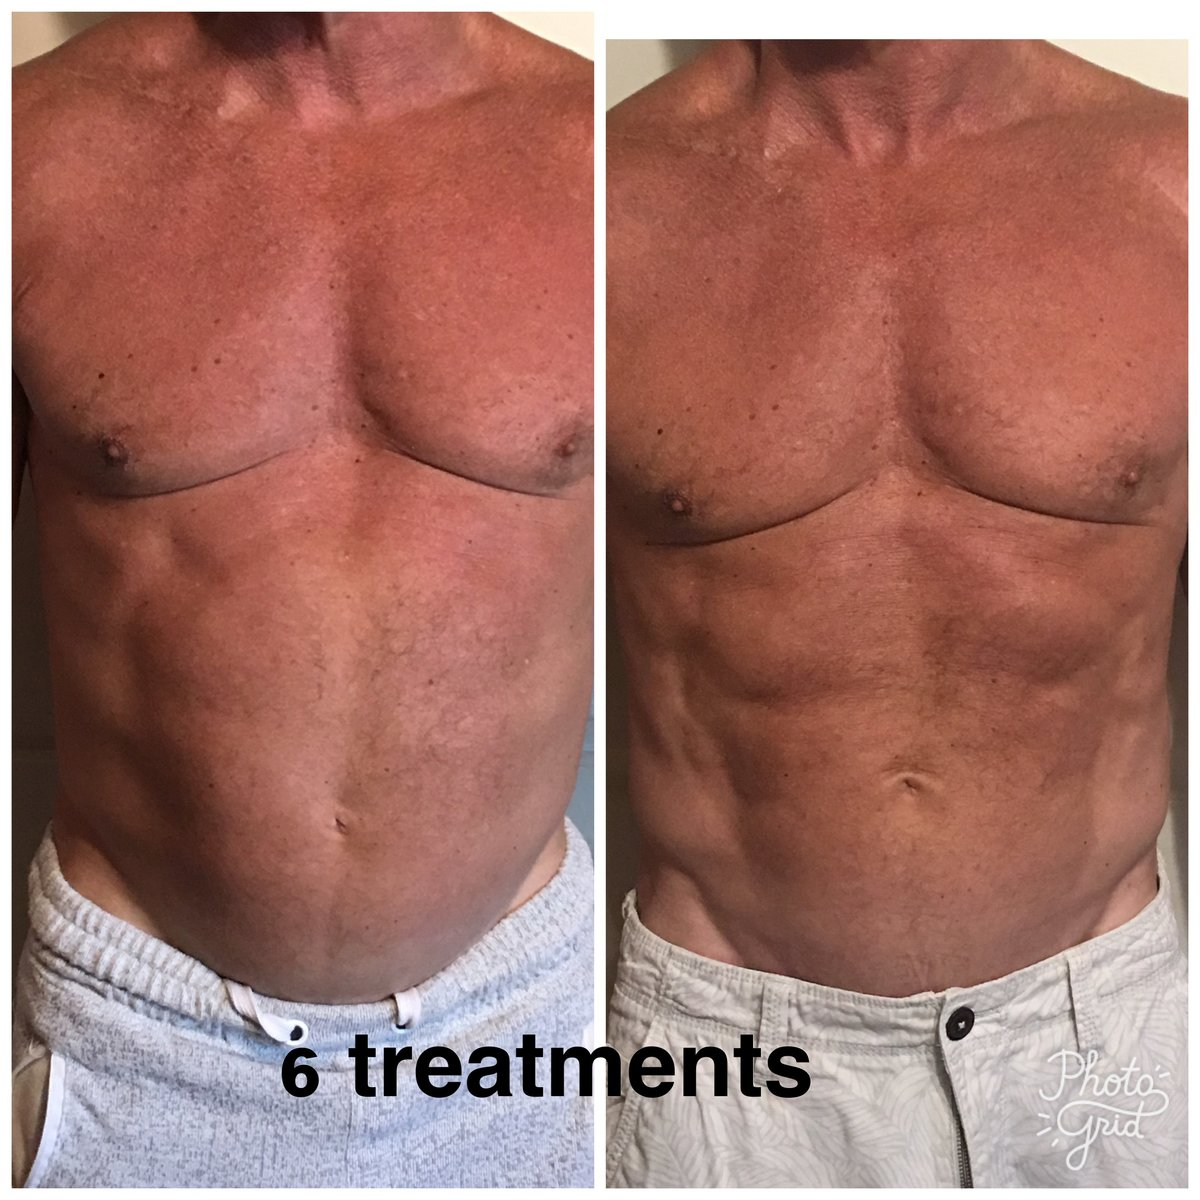 Westlake Body Contouring Light Therapy For Fat Loss